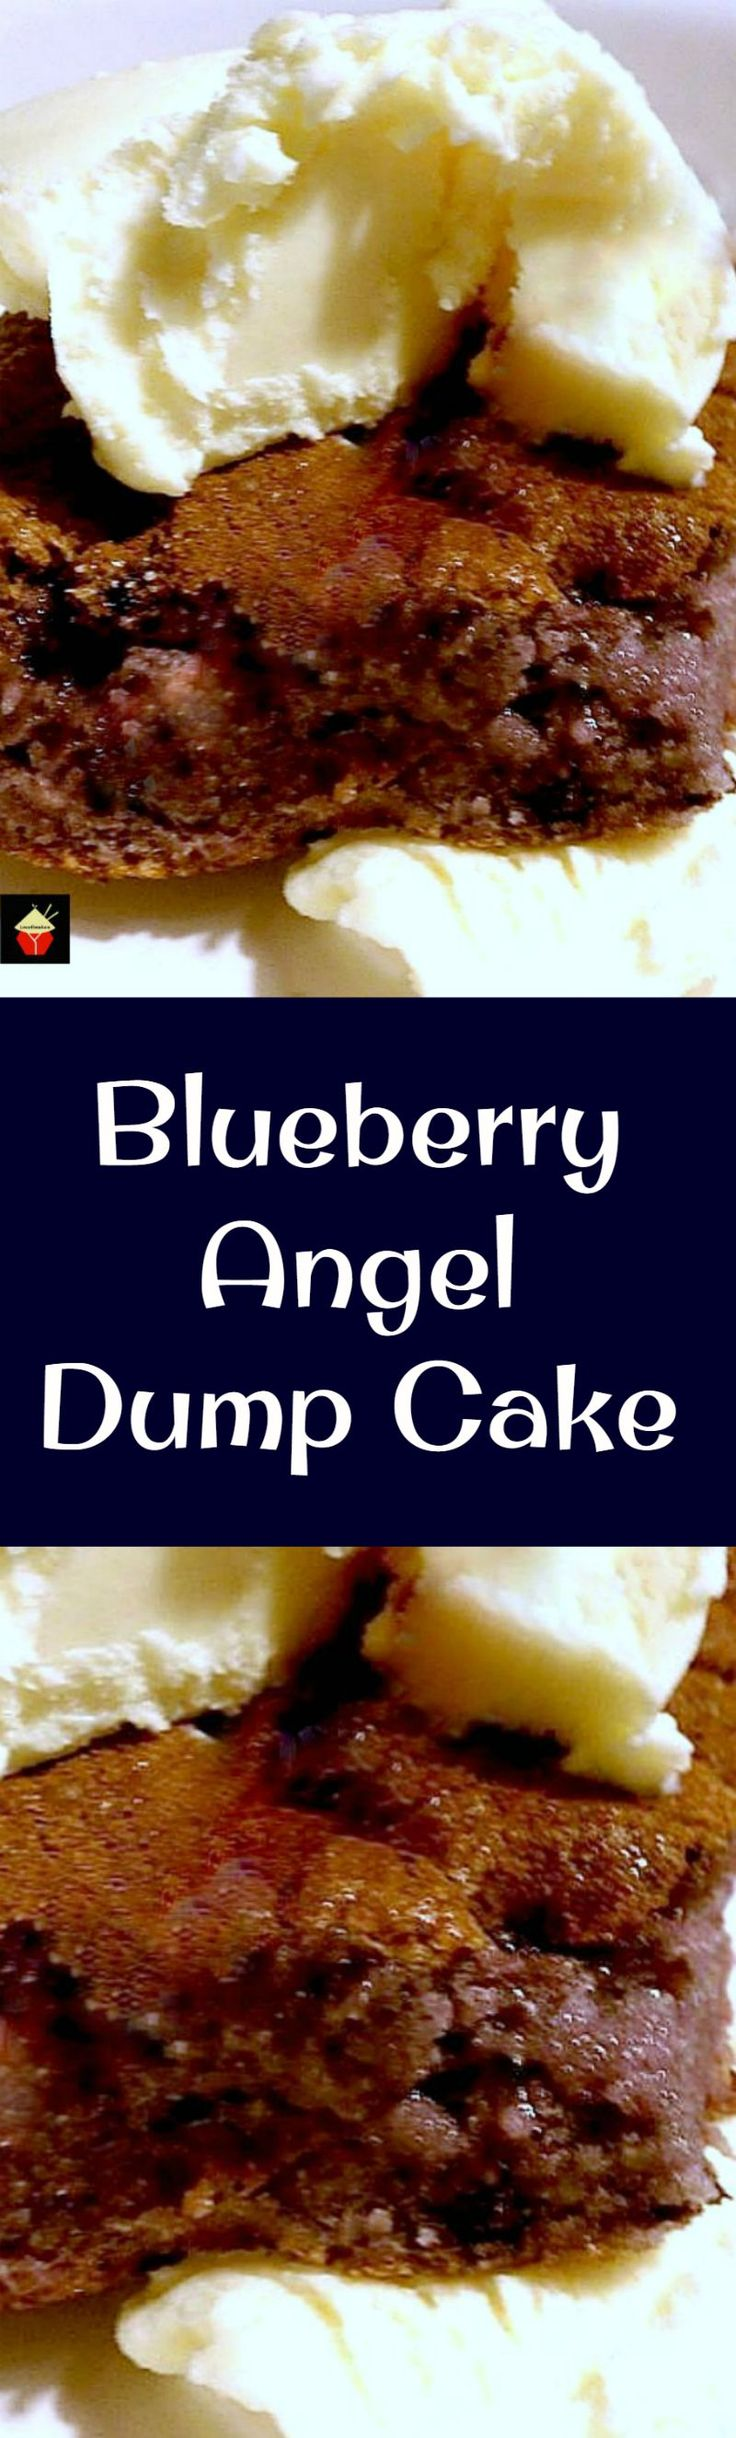 Easy Blueberry  Angel Dump Cake, so delicious with a blob or two of ice cream! Oven or slow cooker, you choose!